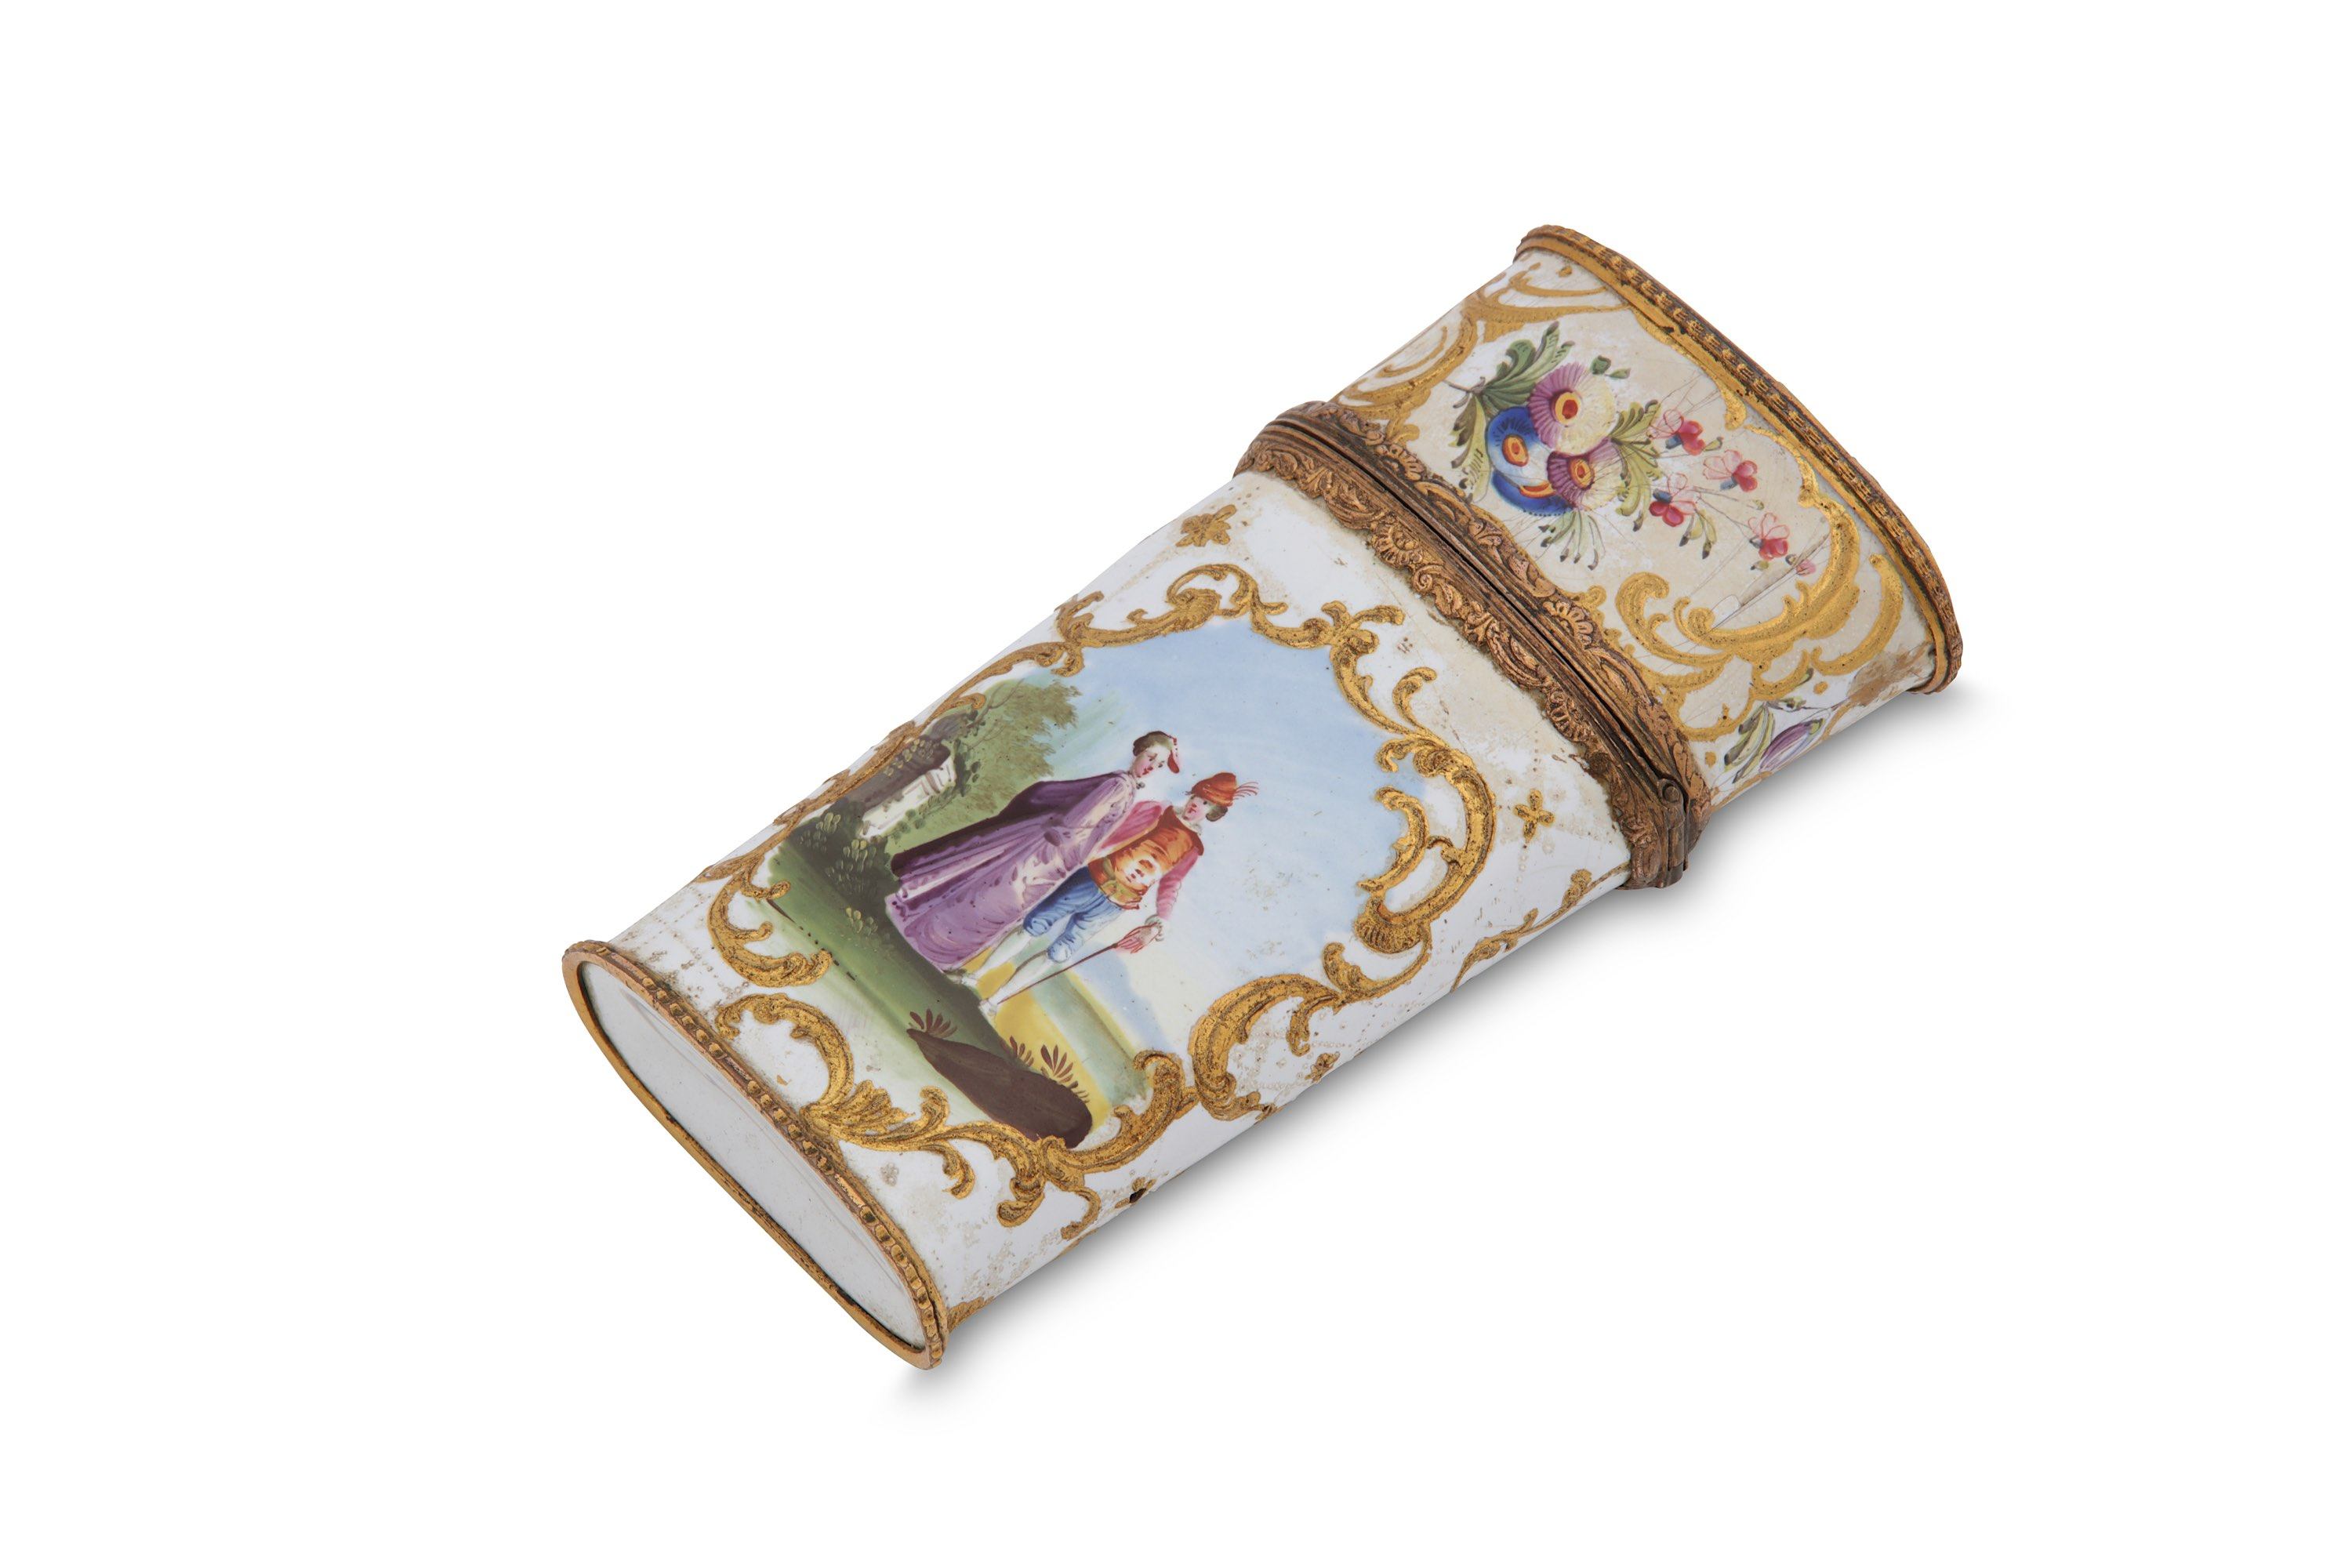 Lot 13 - A mid to late 18th century English enamel etui, South Staffordshire circa 1760